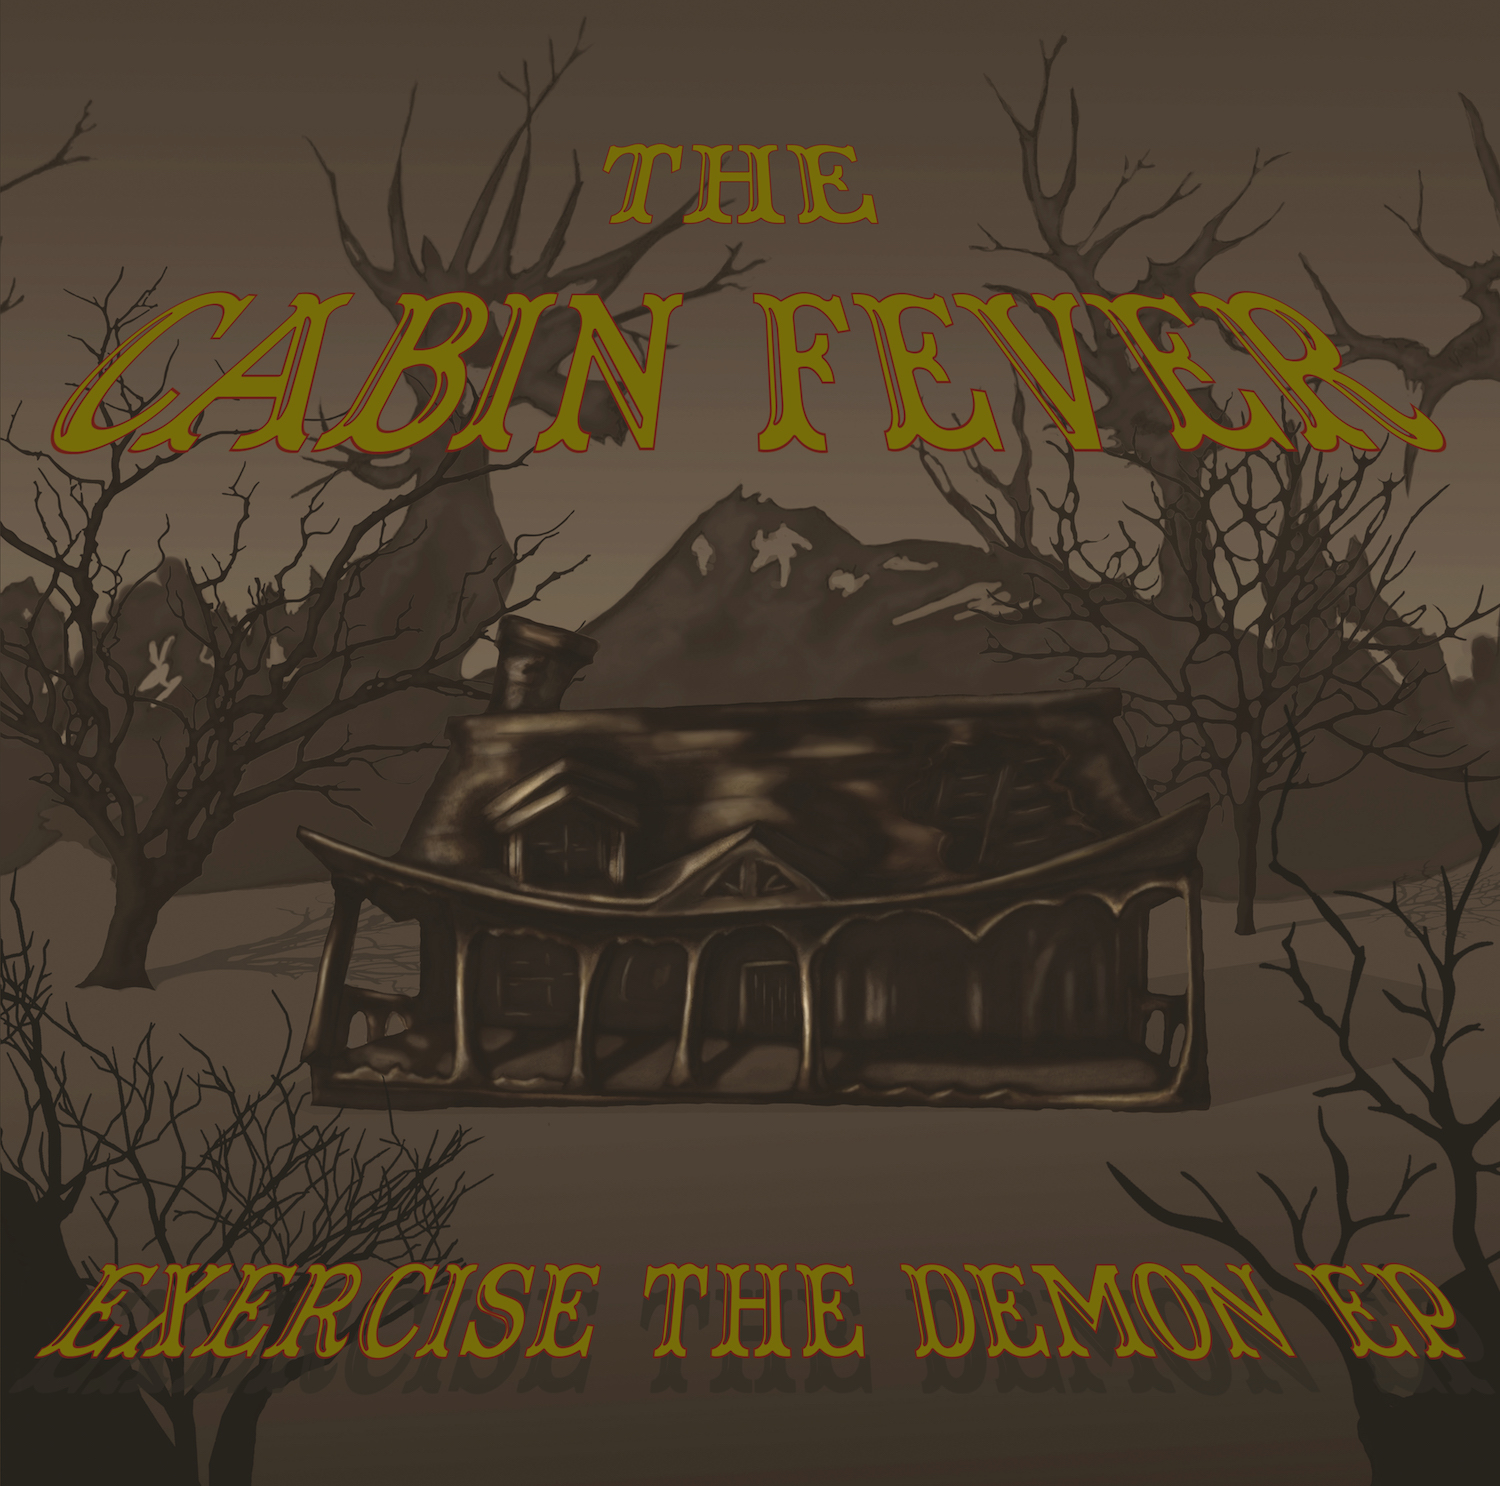 the cabin fever - exercise the demon